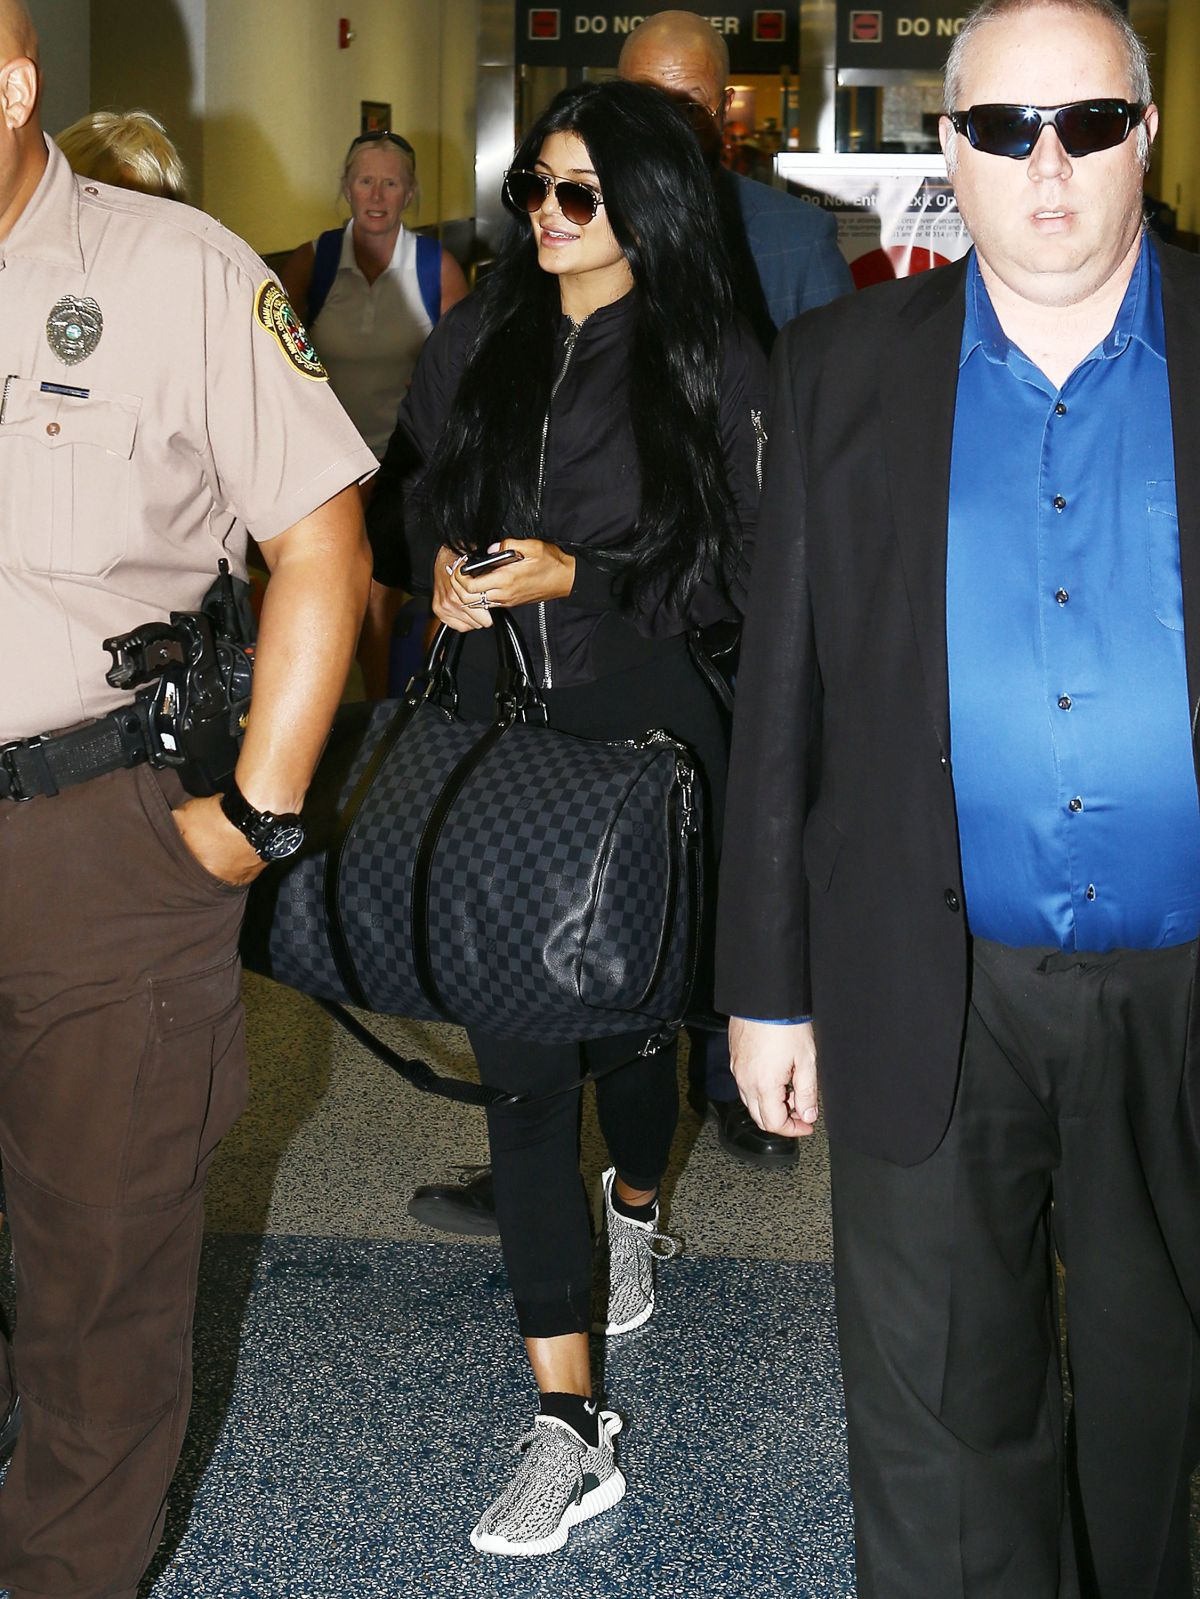 KYLIE JENNER Arrives at Miami International Airport 06/19/2015